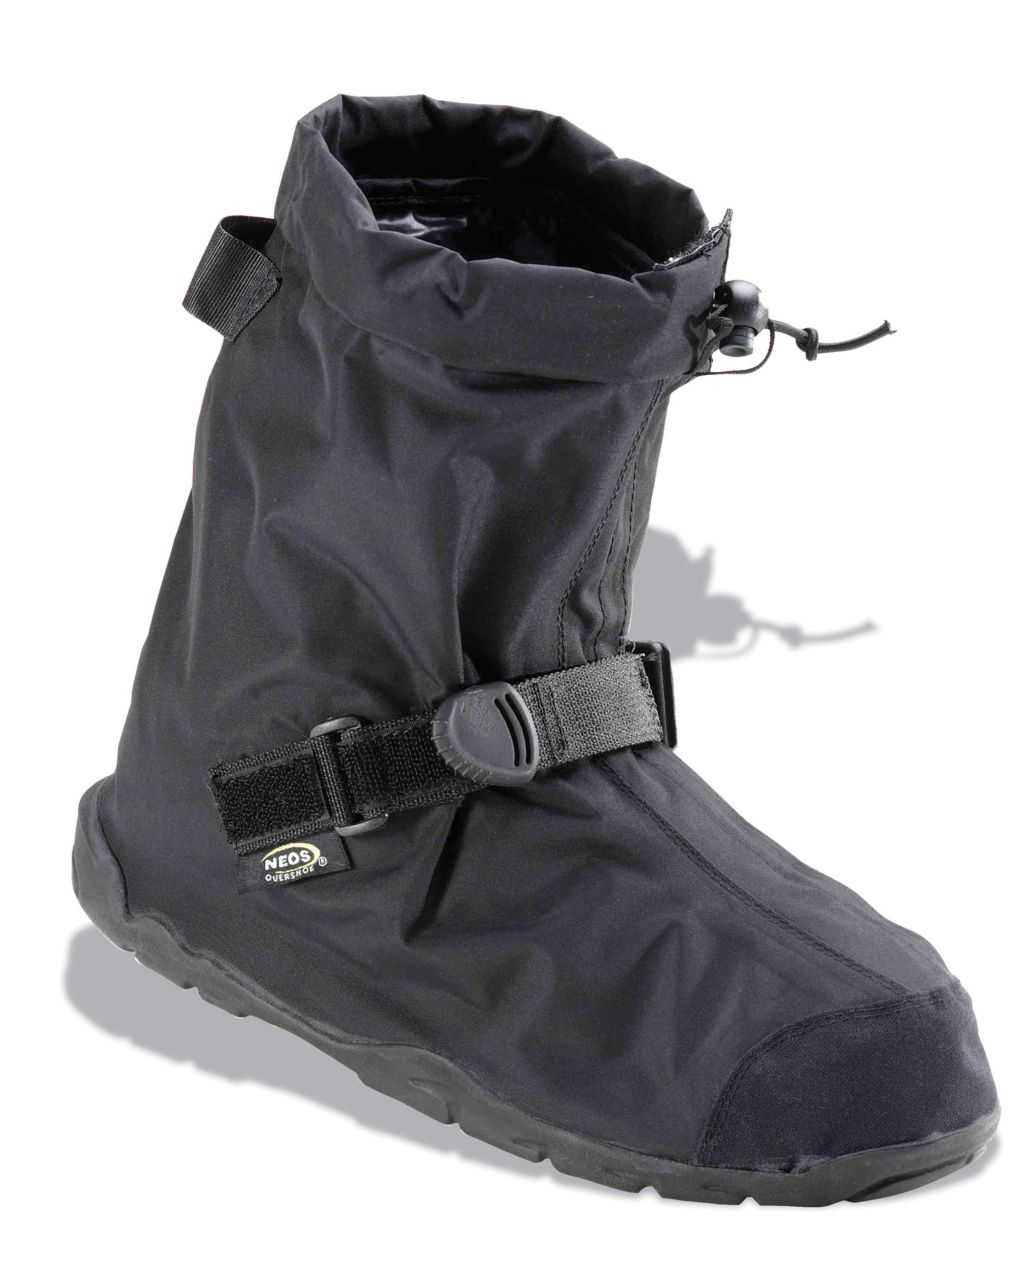 NEOS Villager™ Mid Overshoe_5